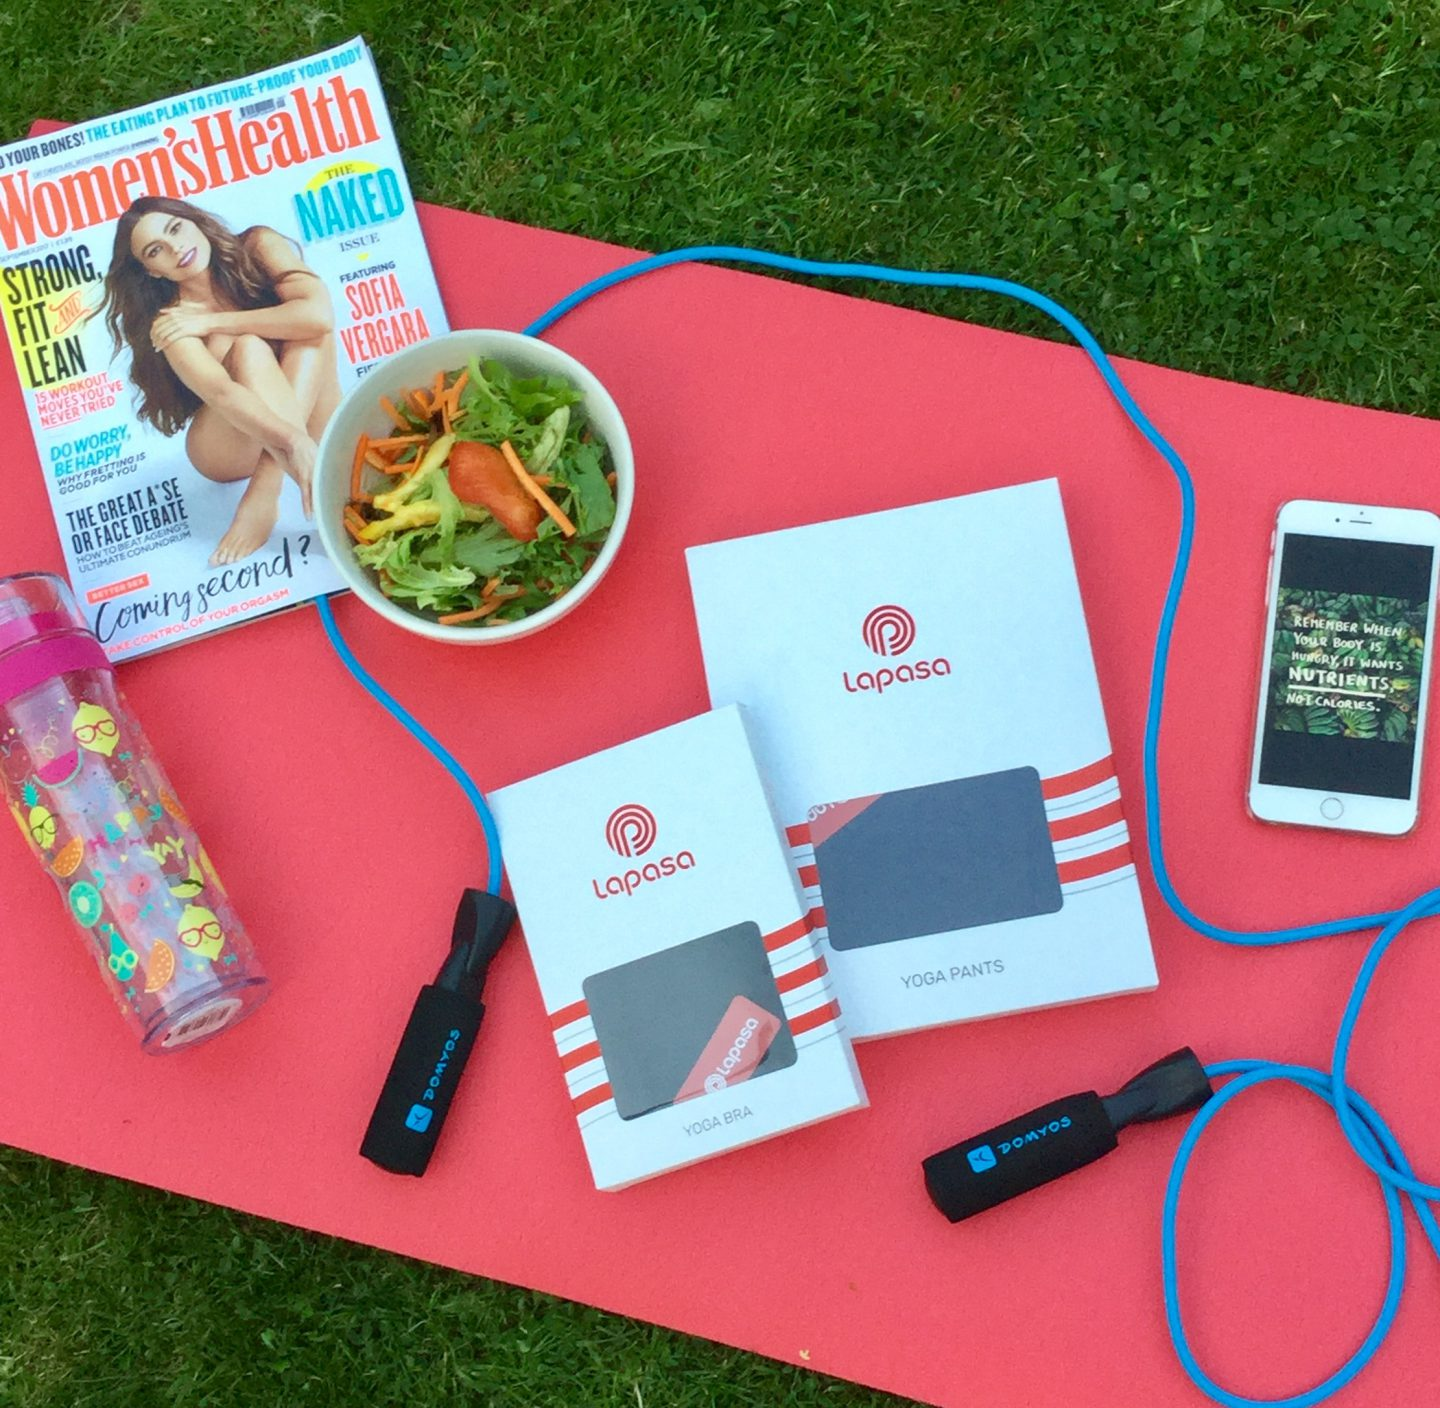 My Fitness Journey with Lapasa: A Review